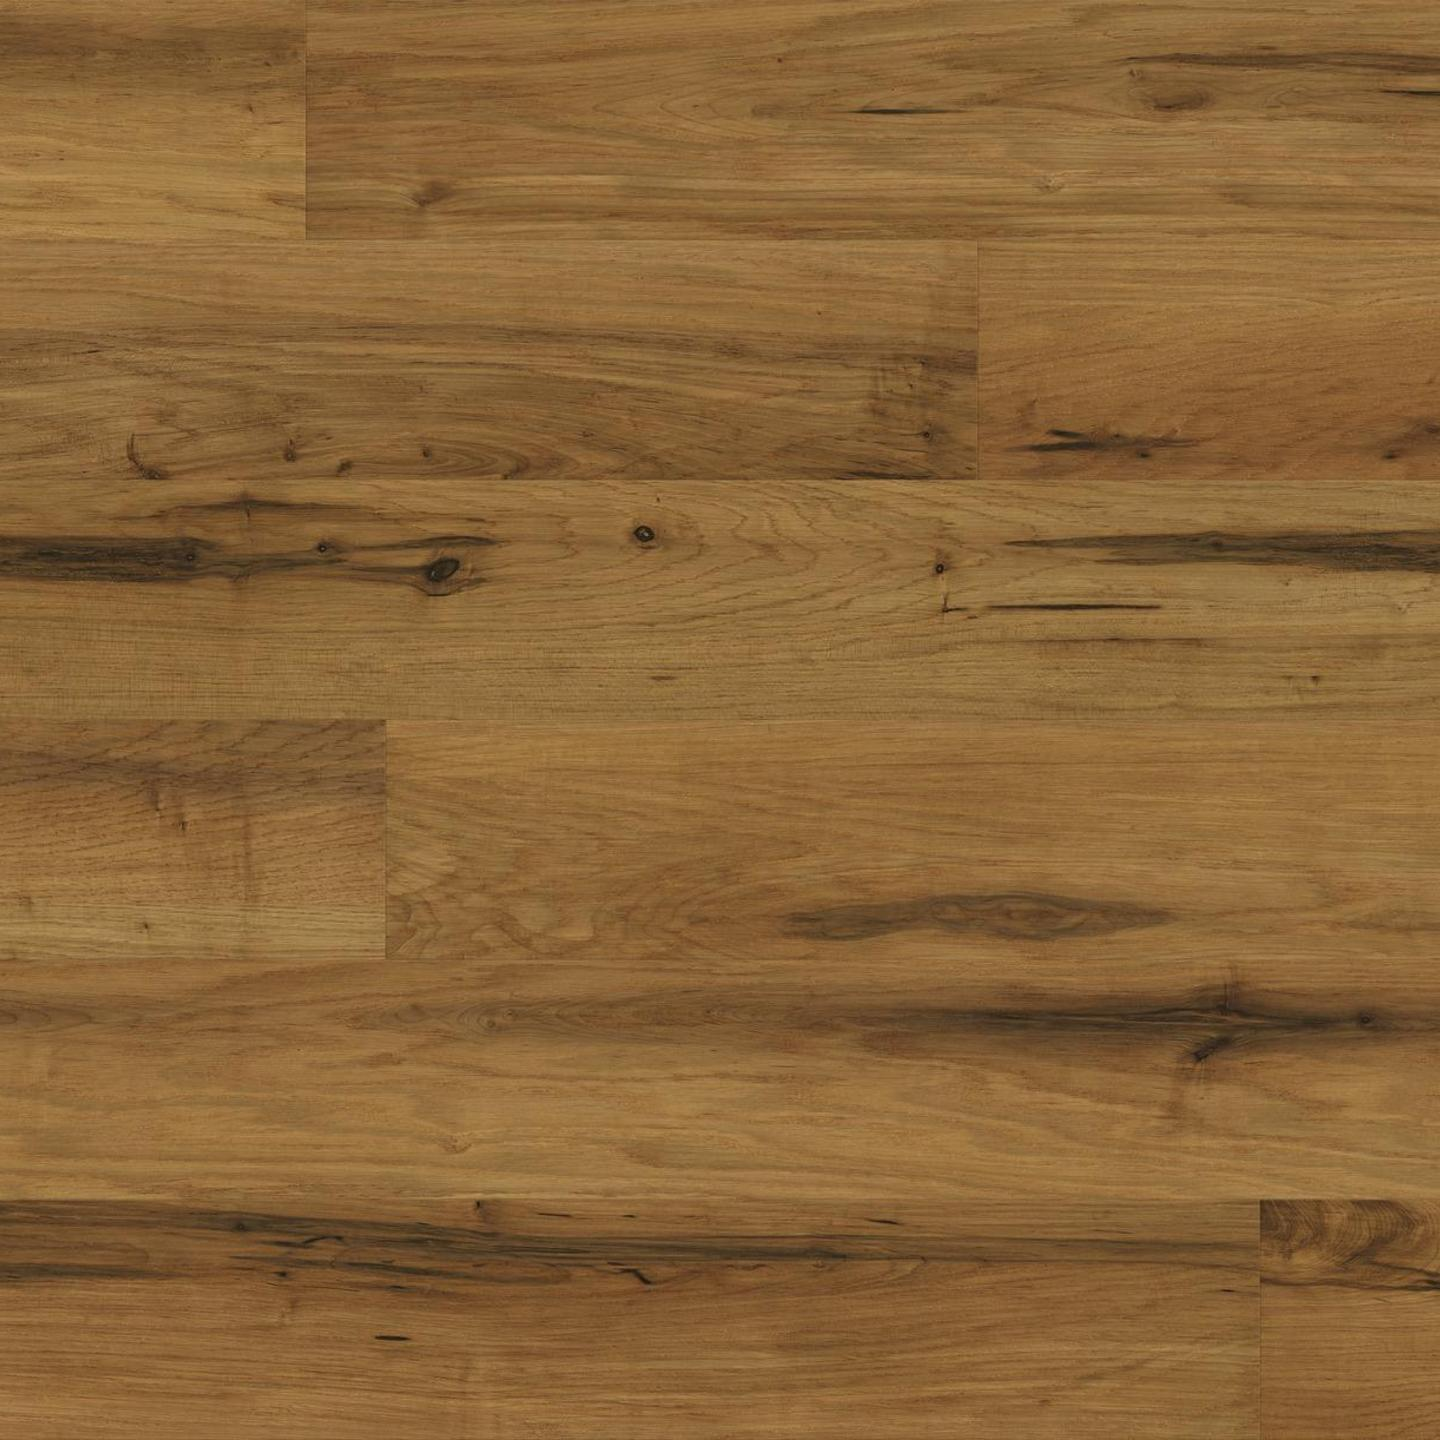 superficie di posa pavimento in legno Veneer Parquet O320 Rovere Jungle LM